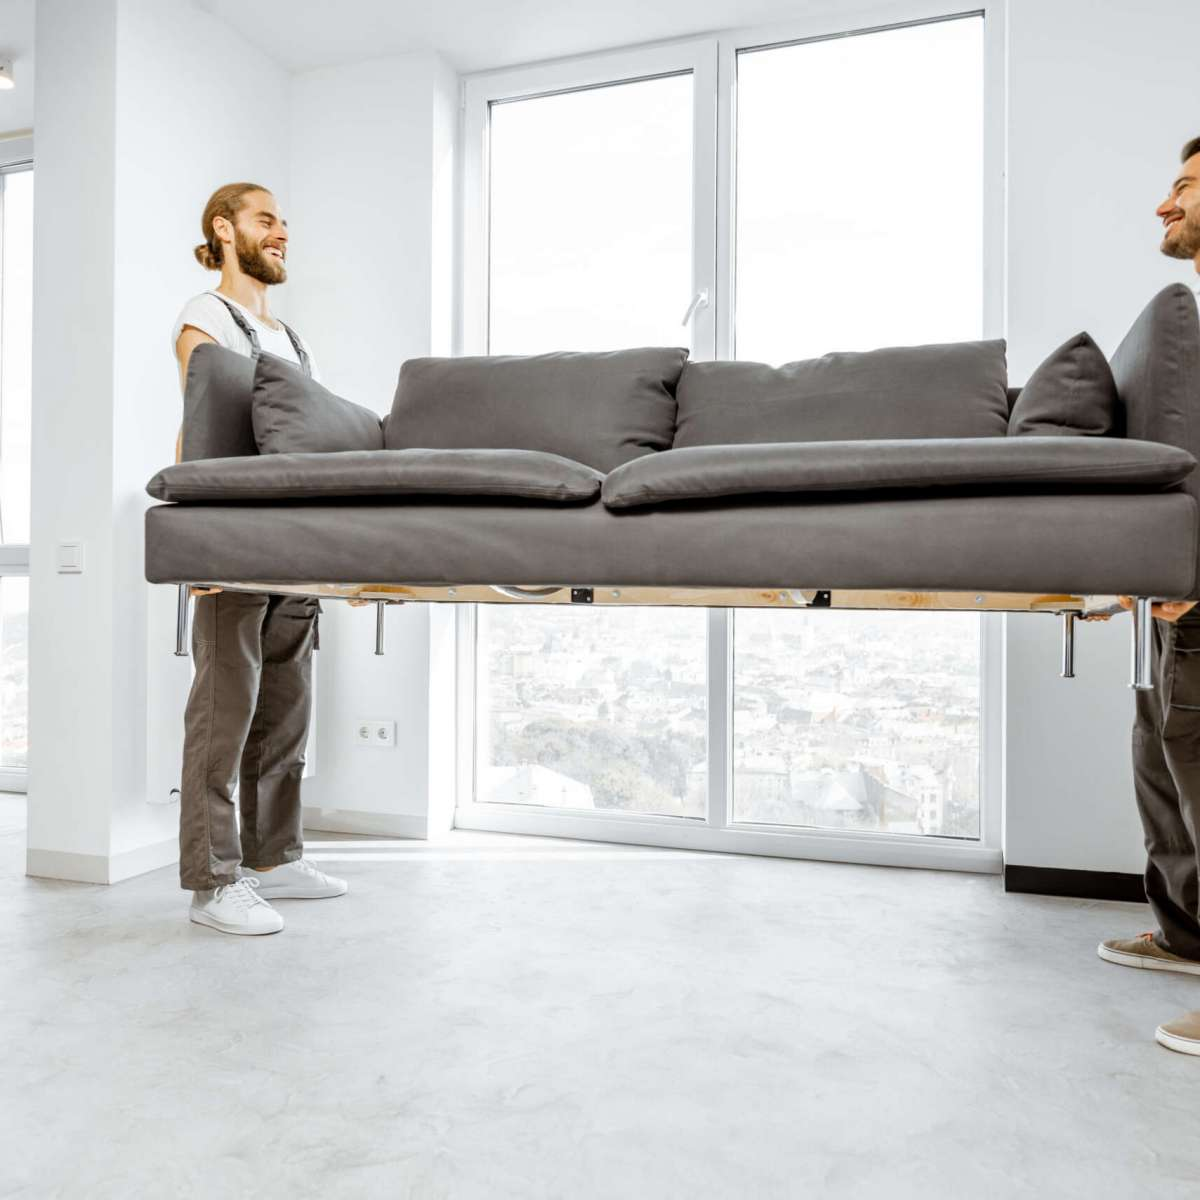 Two professional movers in workwear placing large couch in the living room of the modern white apartment. Furniture delivery concept